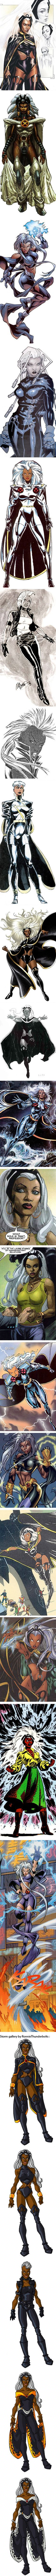 Storm  More @ http://pinterest.com/ingestorm/comic-art-storm & http://pinterest.com/ingestorm/comic-art-x-men & http://groups.yahoo.com/group/Dawn_and_X_Women & http://groups.google.com/group/Comics-Strips & http://groups.yahoo.com/group/ComicsStrips & http://www.facebook.com/ComicsFantasy & http://www.facebook.com/groups/ArtandStuff